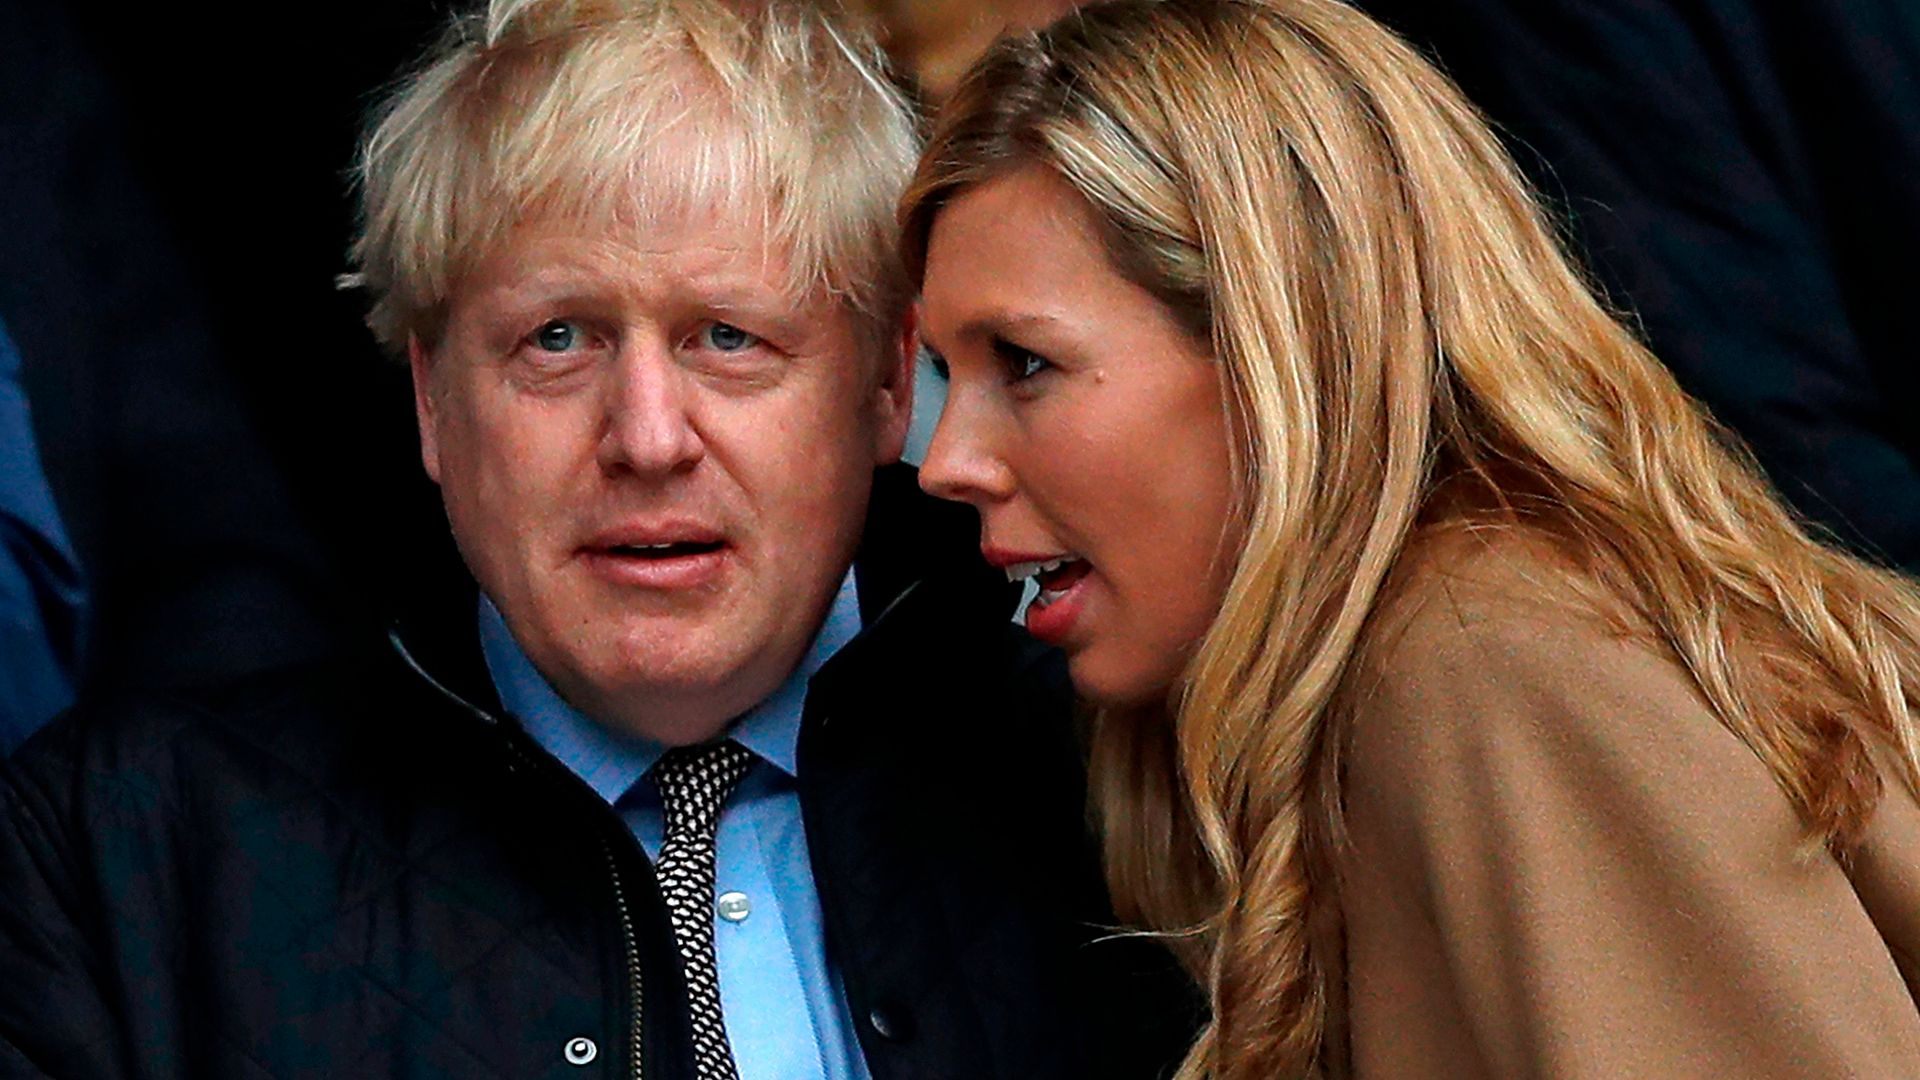 Boris Johnson with fiancee Carrie Symonds - Credit: AFP via Getty Images